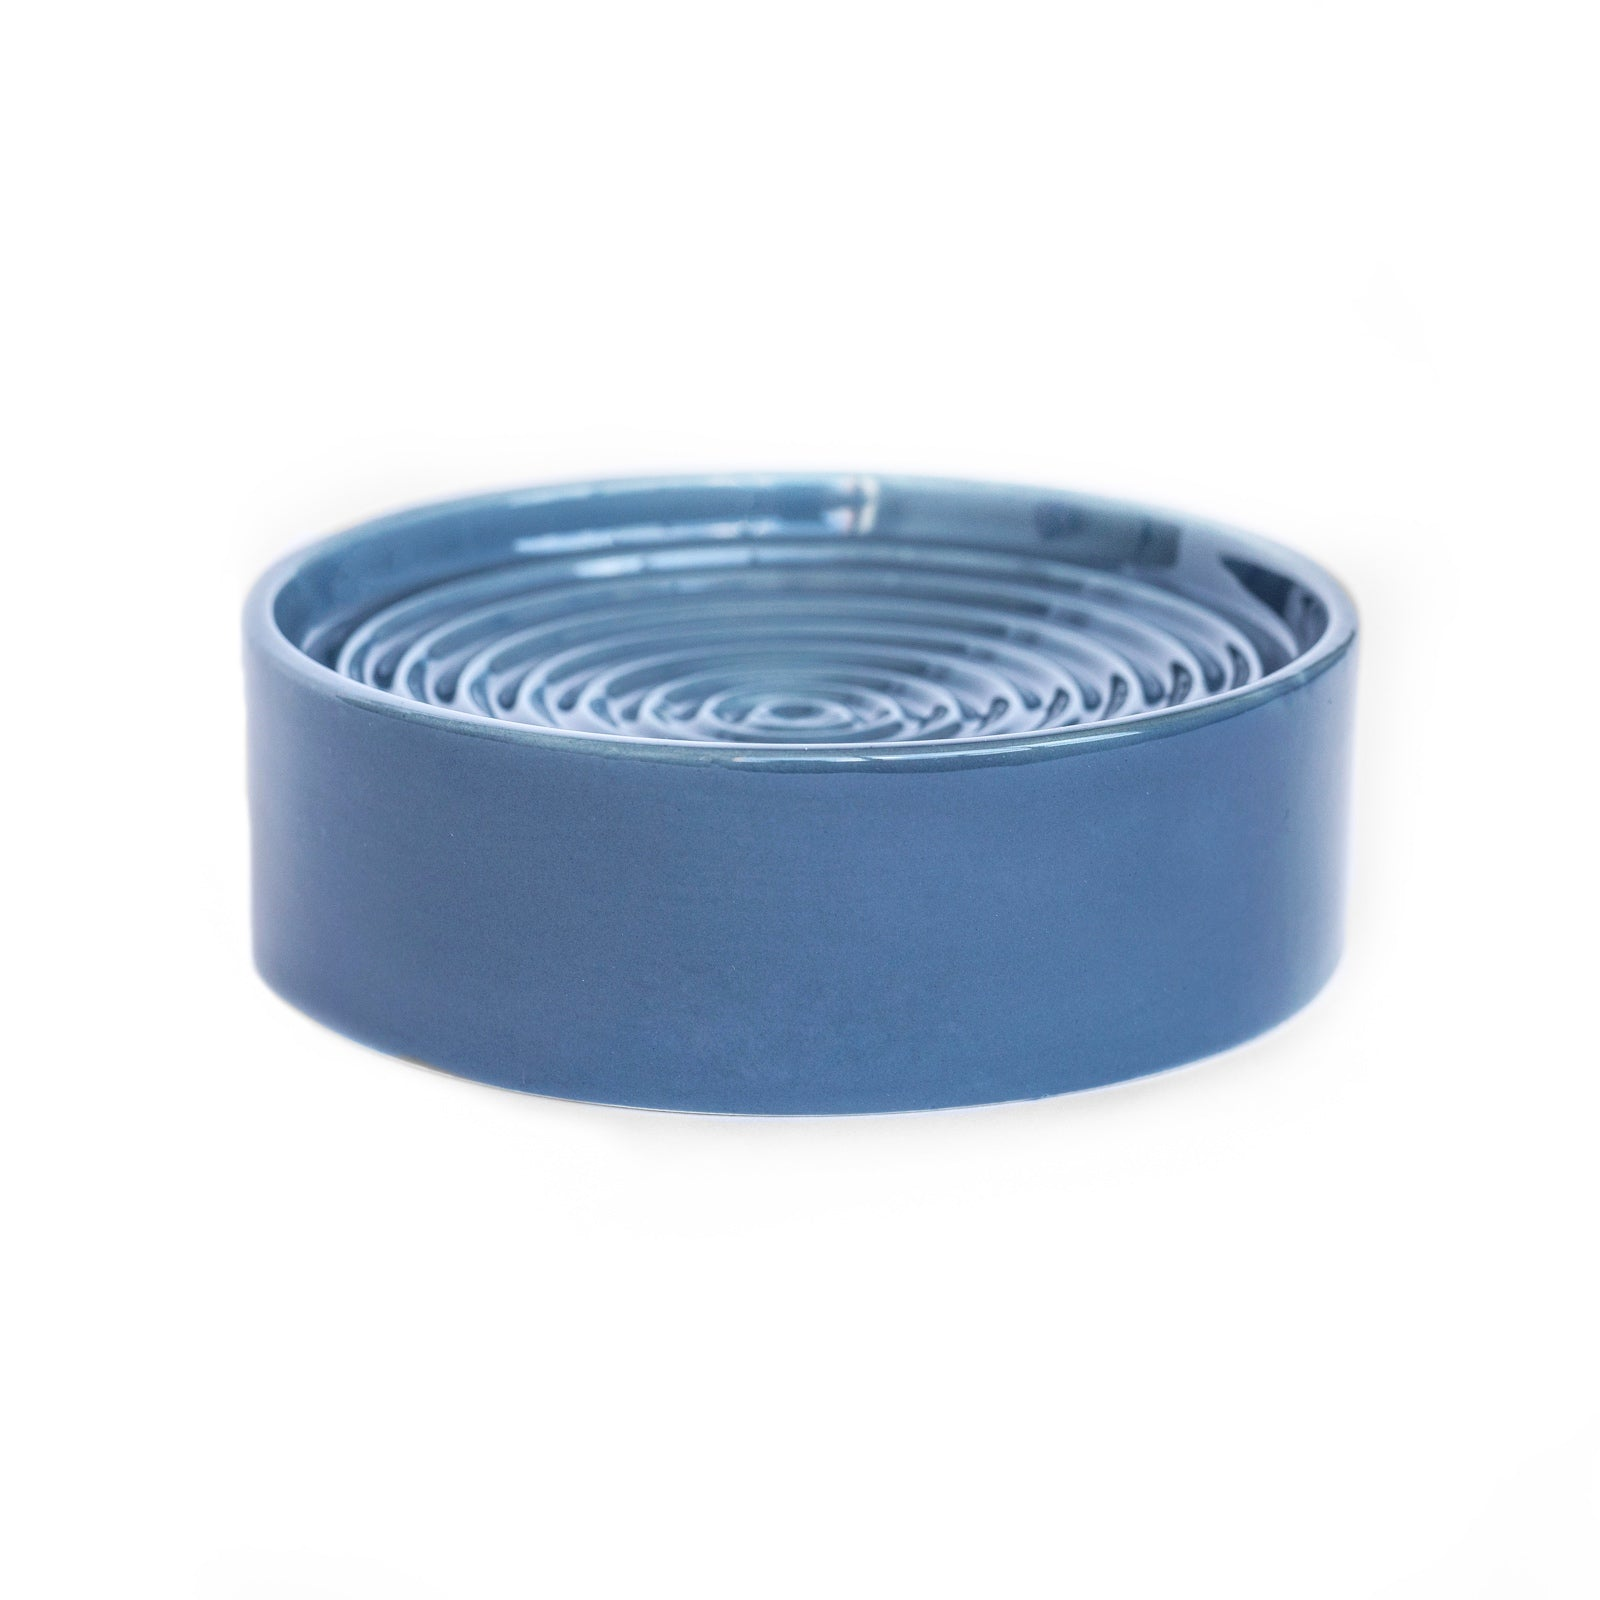 Noots Modern Ceramic Slow Feed Cat Bowl in Blue